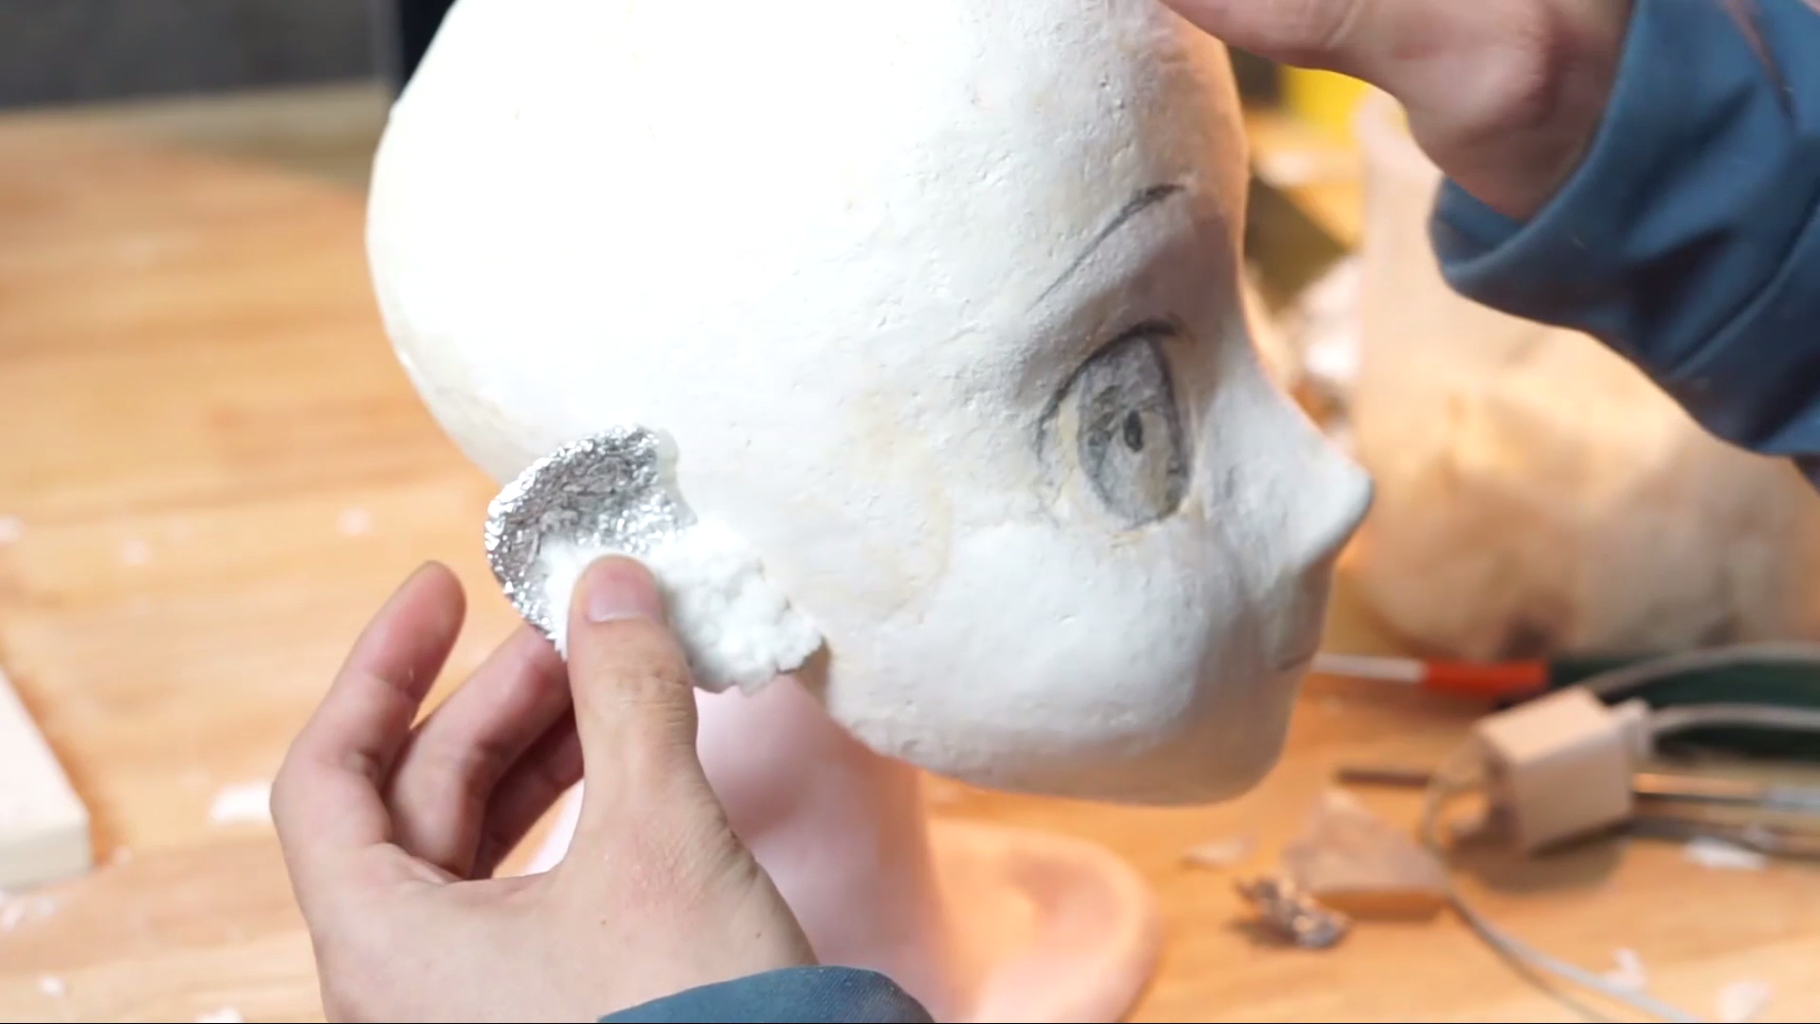 Shaping the Nose and Ears